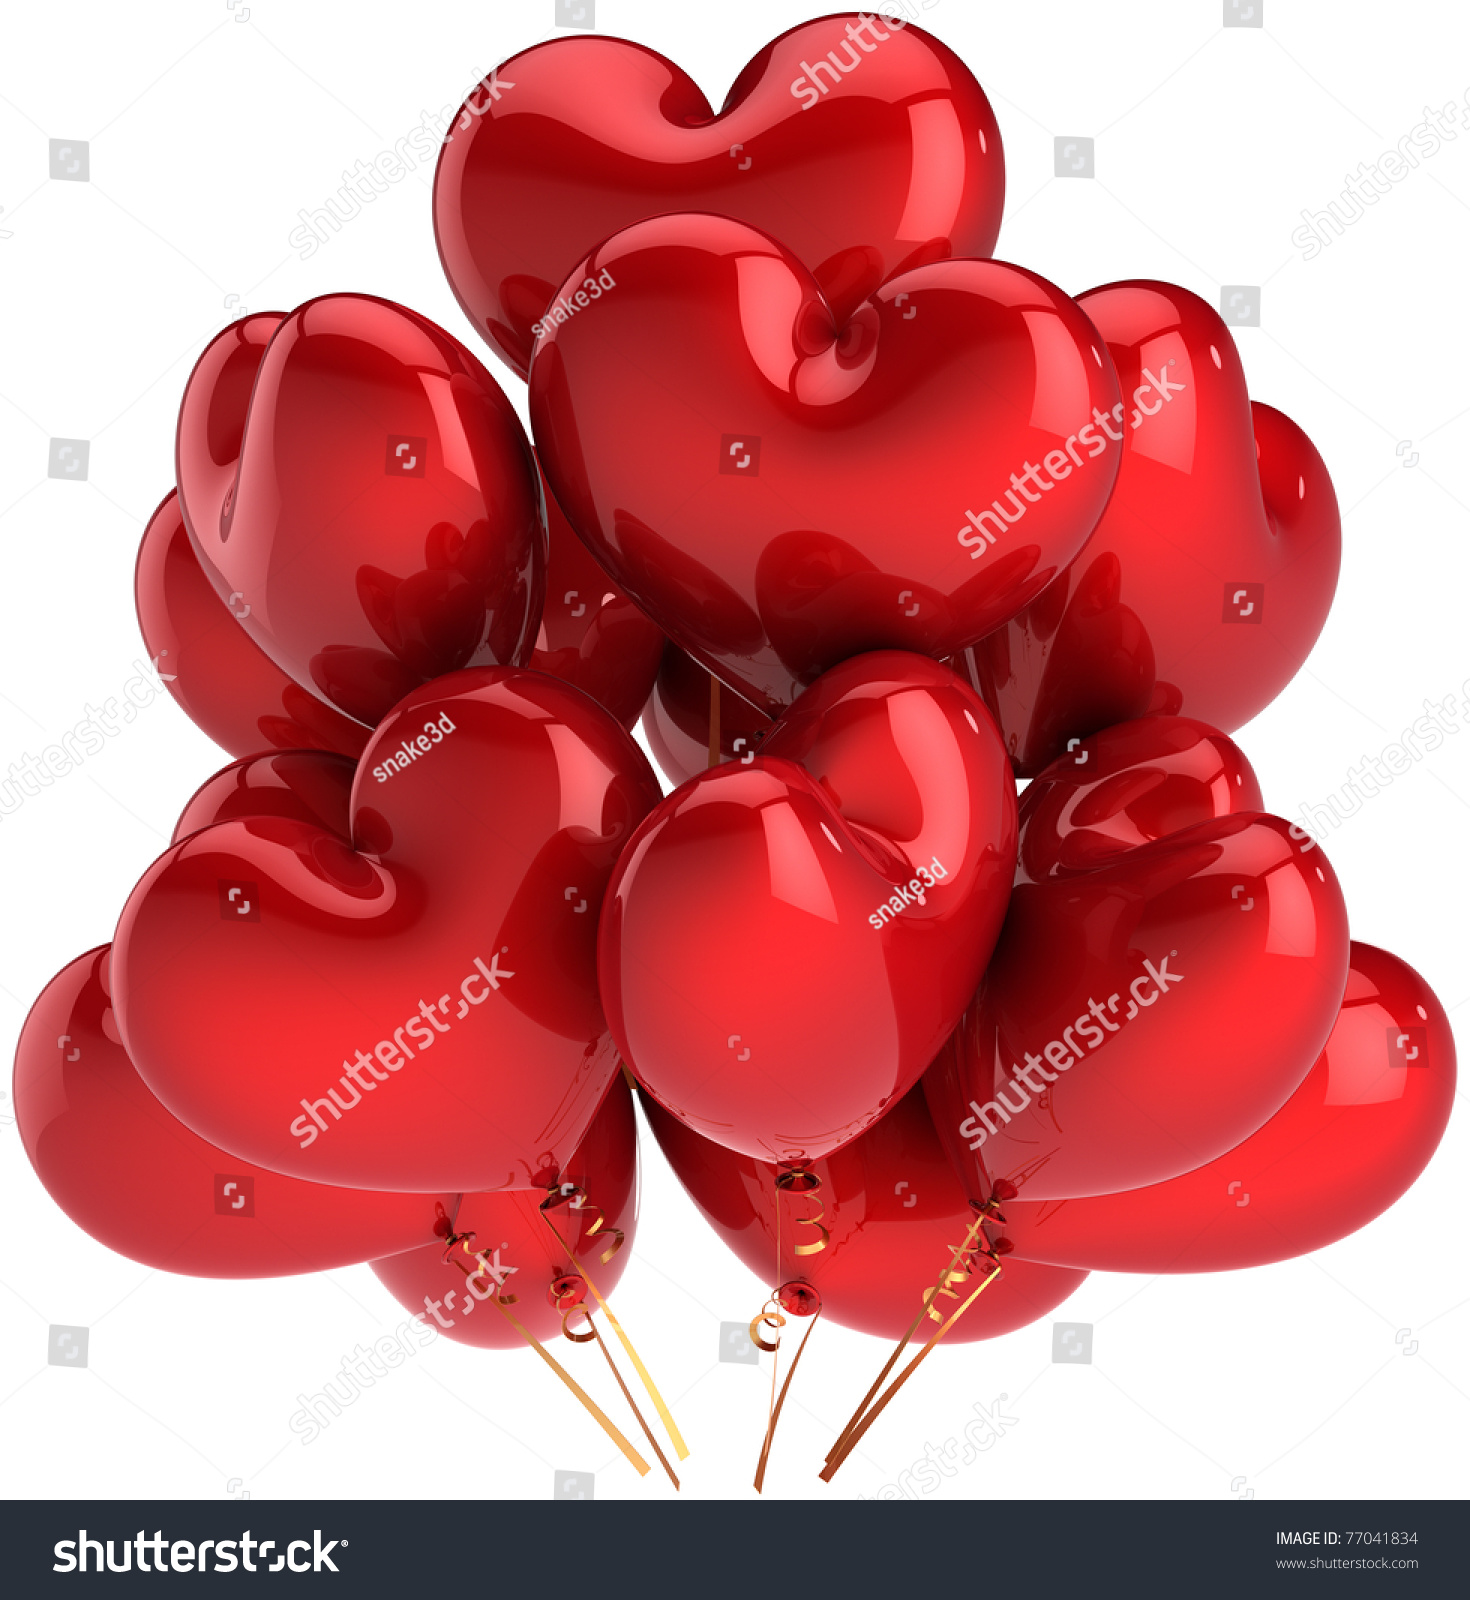 Party balloons love red hearts birthday stock illustration